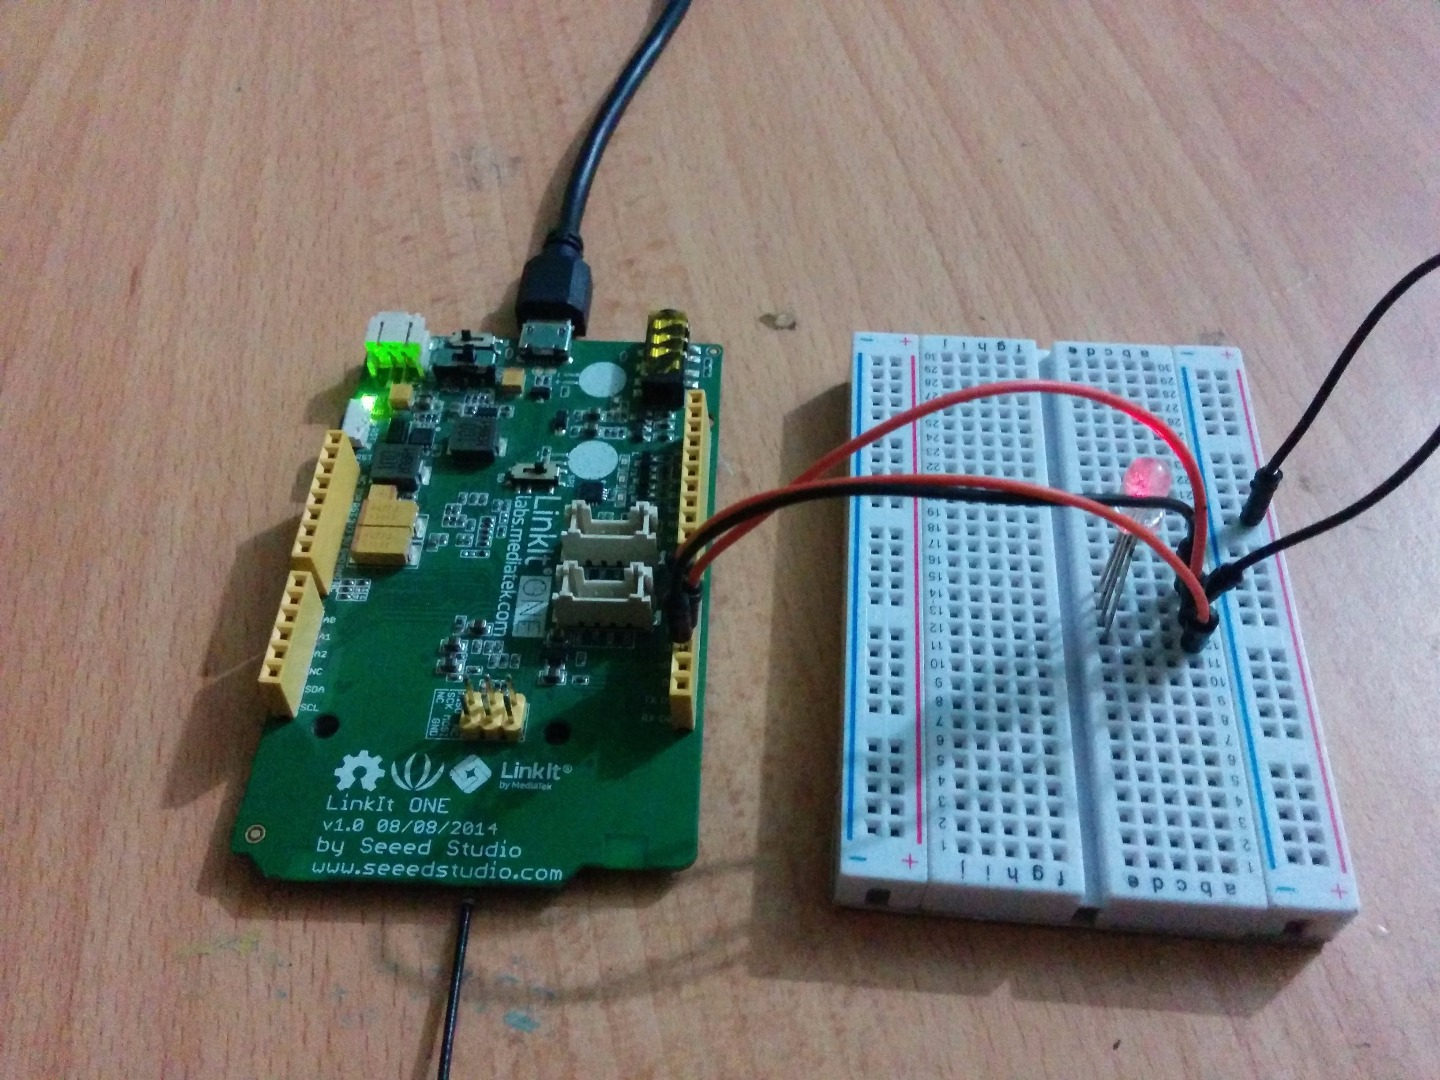 Picture of Linkit One and RGB LEDs